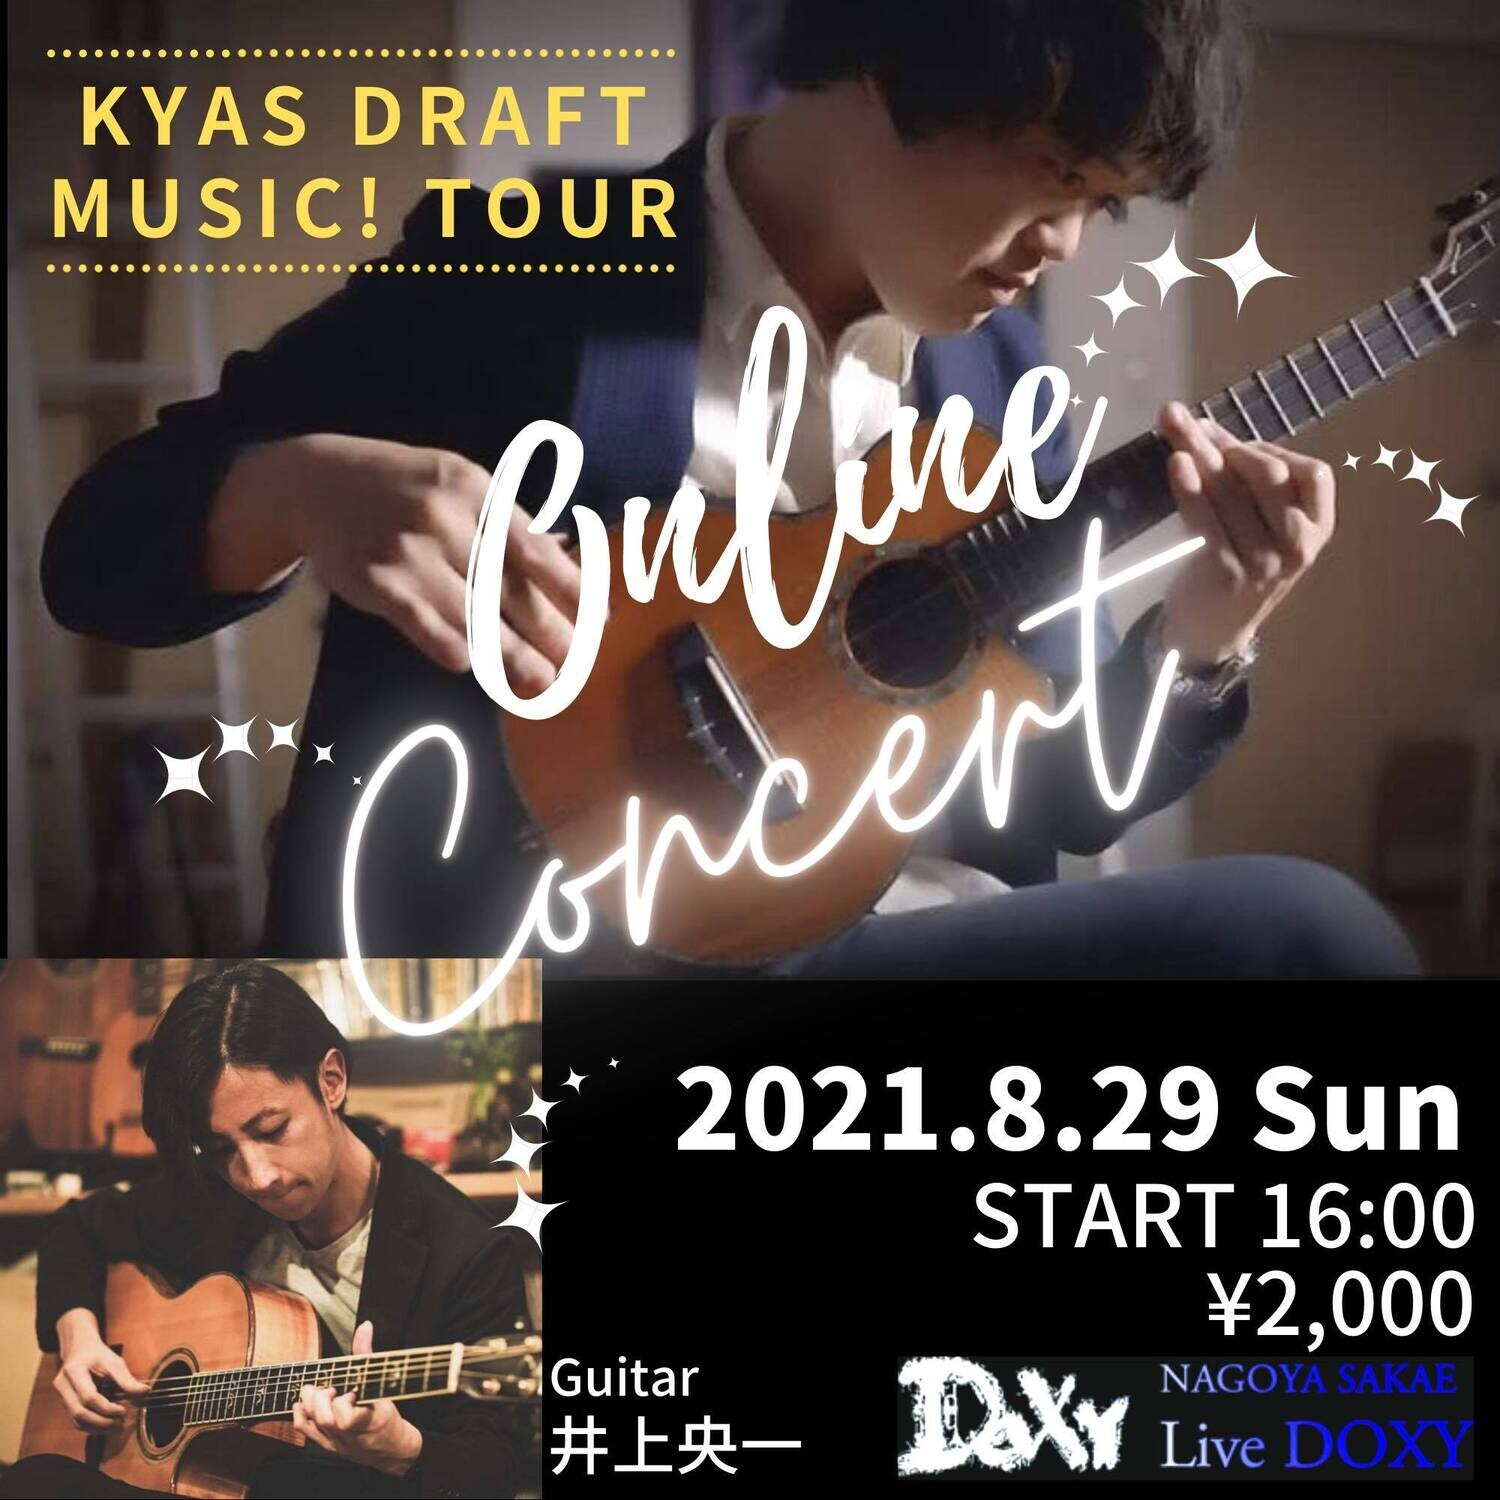 2021.8.29 KYAS DRAFT MUSIC! TOUR @名古屋DOXY(with 井上央一 Gt)